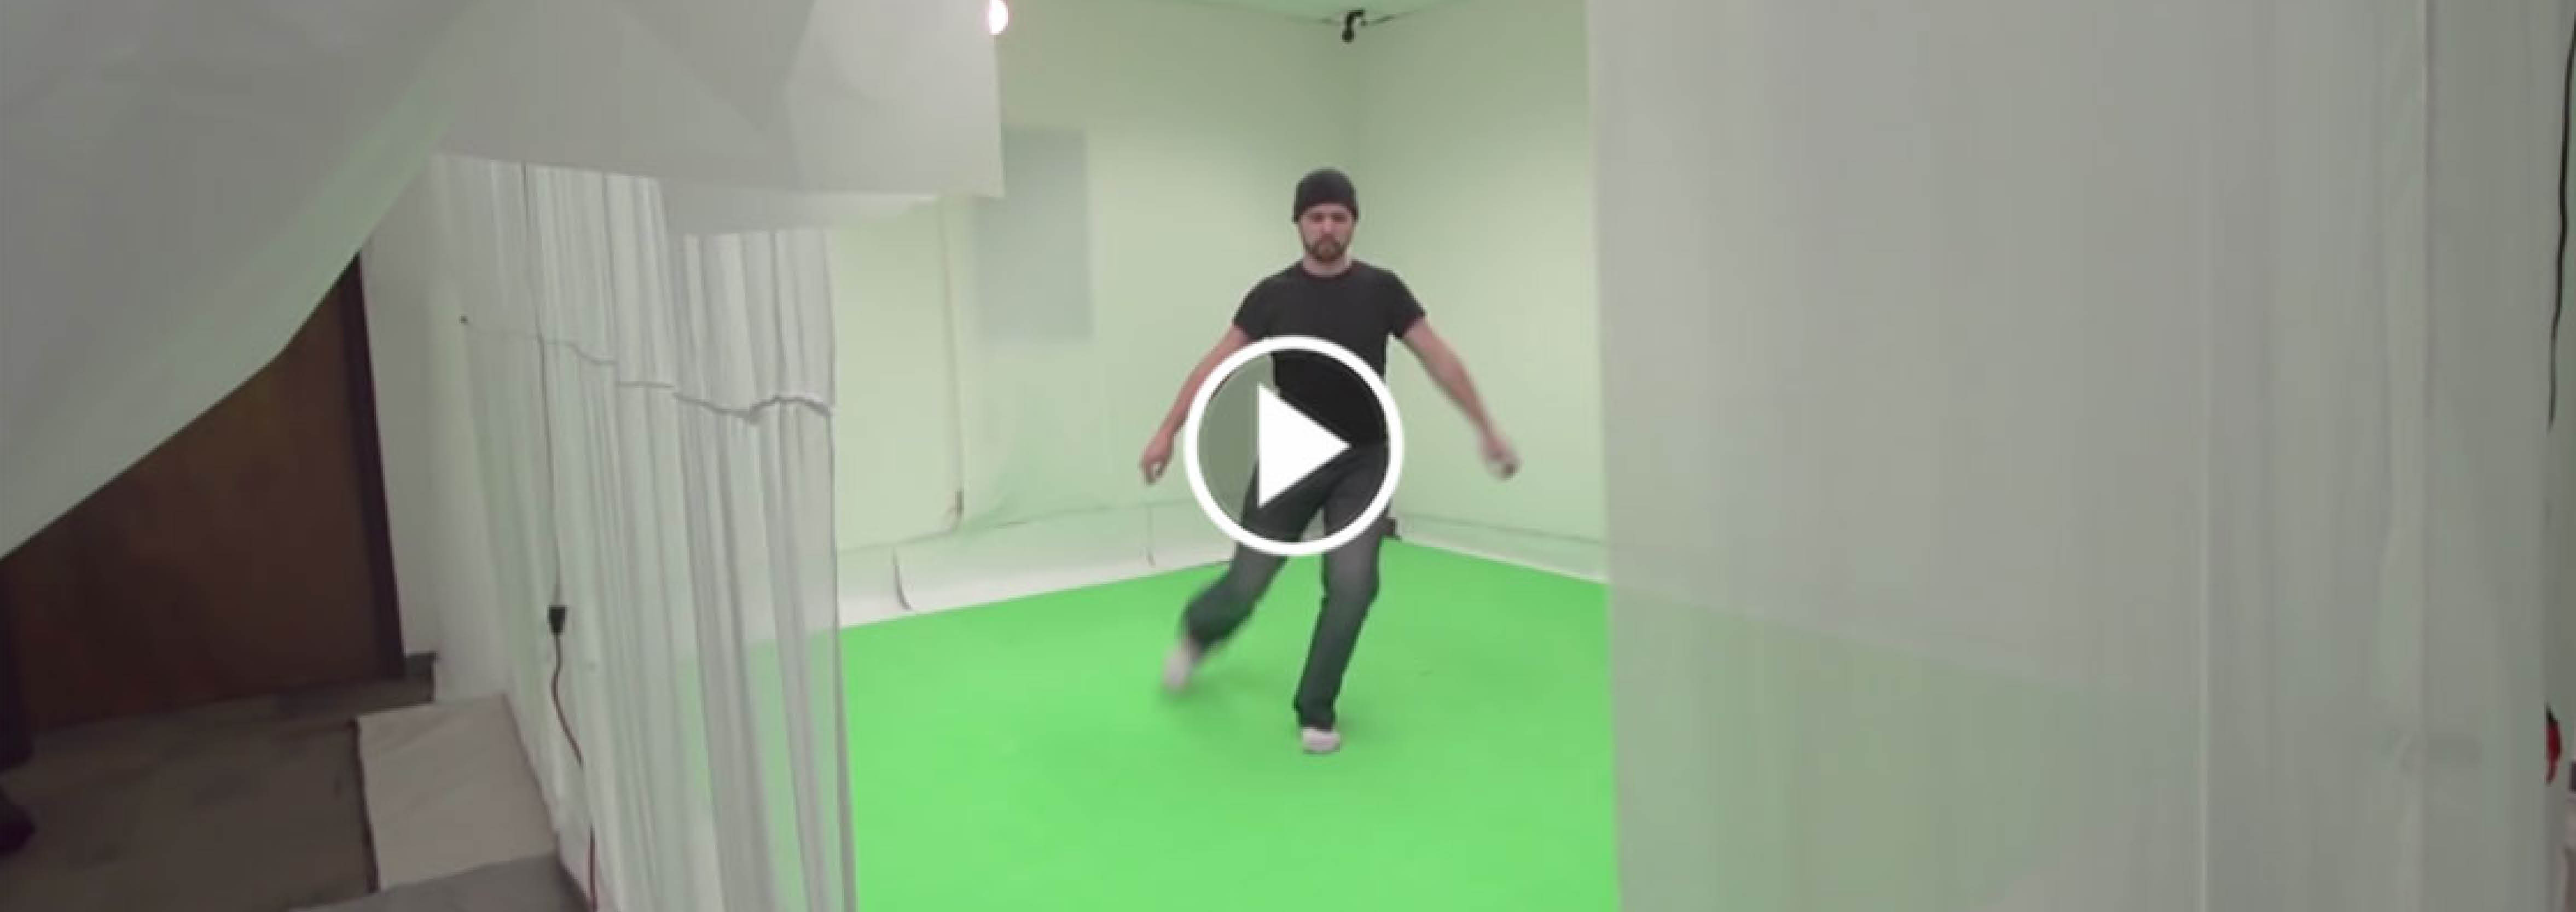 student working in markerless motion capture studio